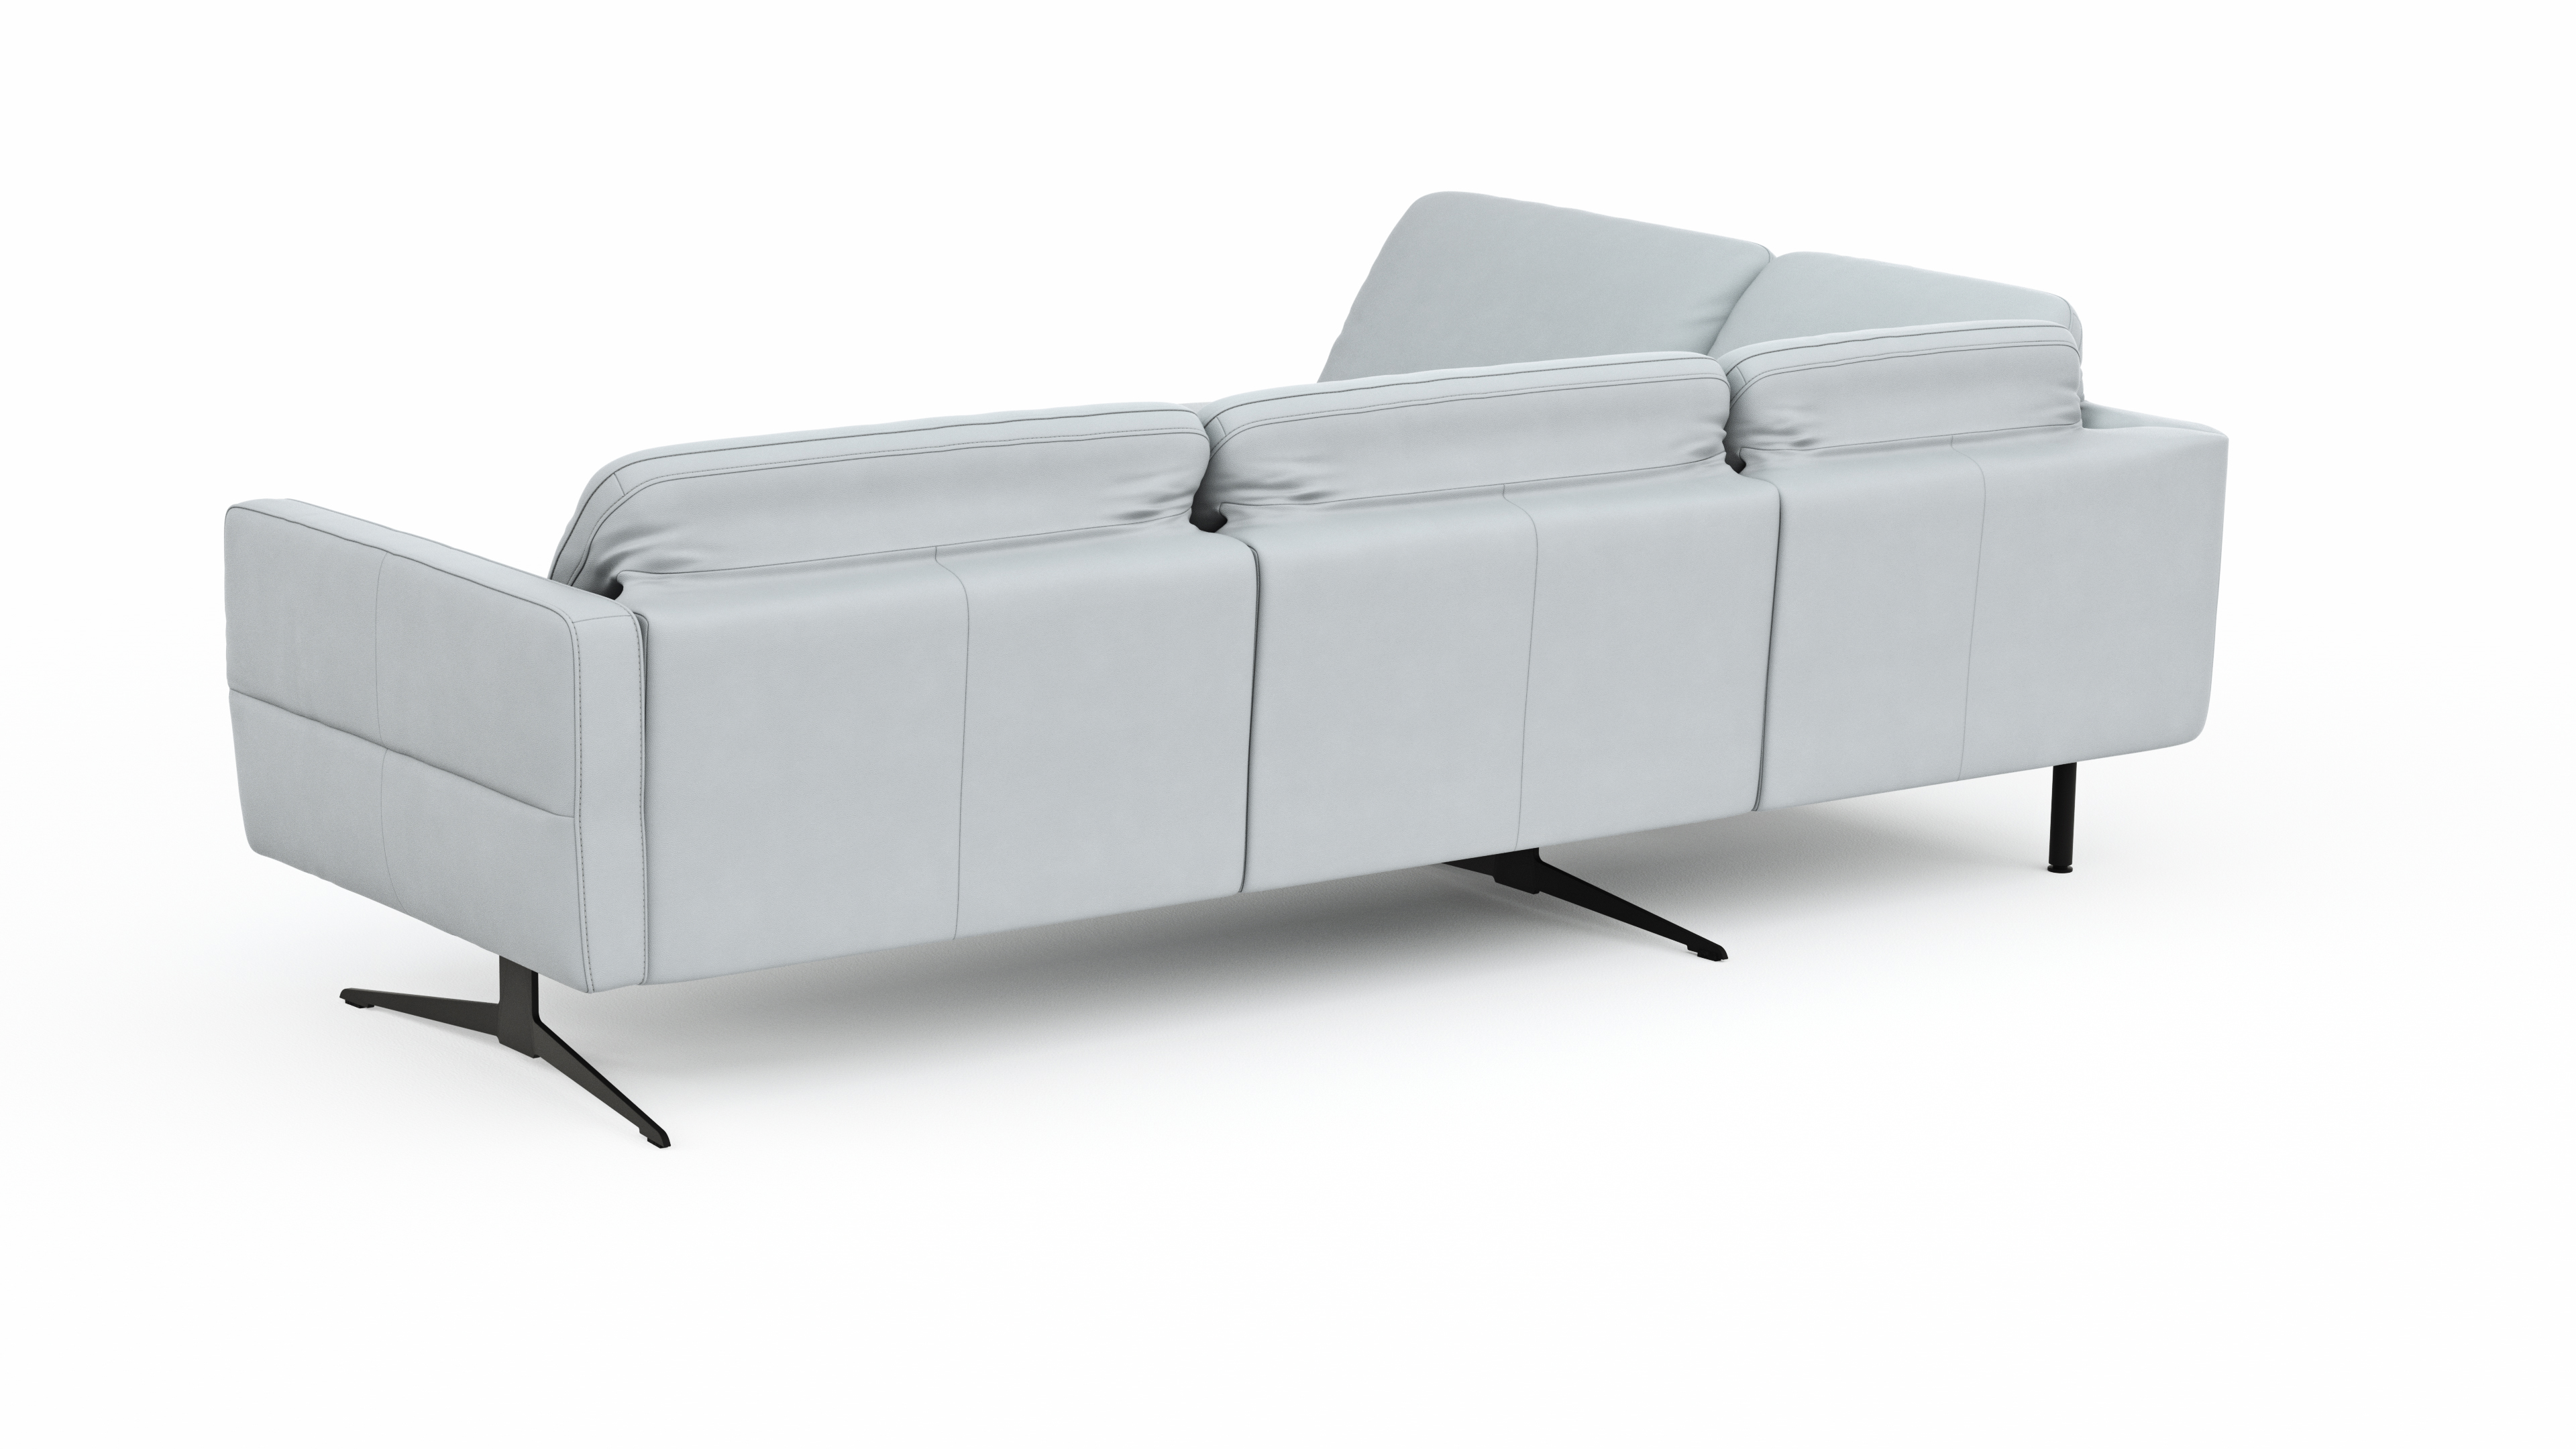 Global Select Ecksofa Estrela freisteller 3 104190 | Homepoet